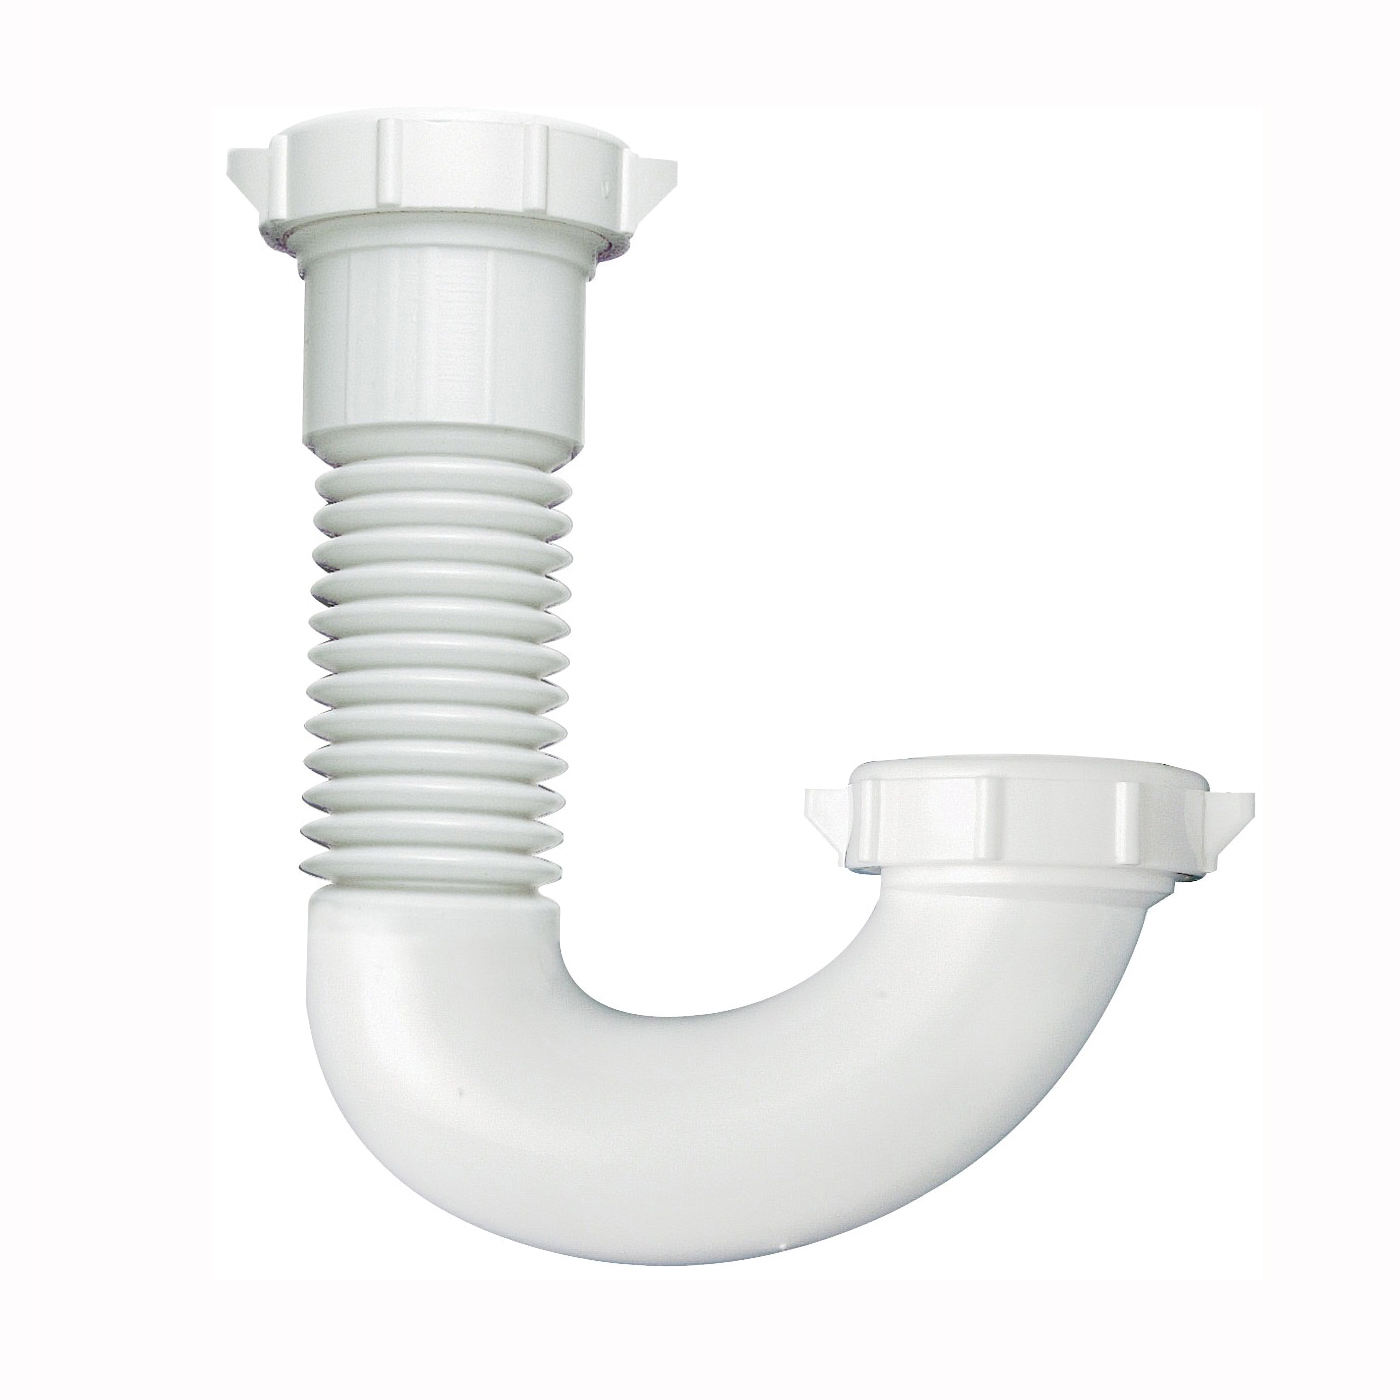 Picture of Plumb Pak PP21250 J-Bend, 1/2 x 1-1/4 in, Plastic, White